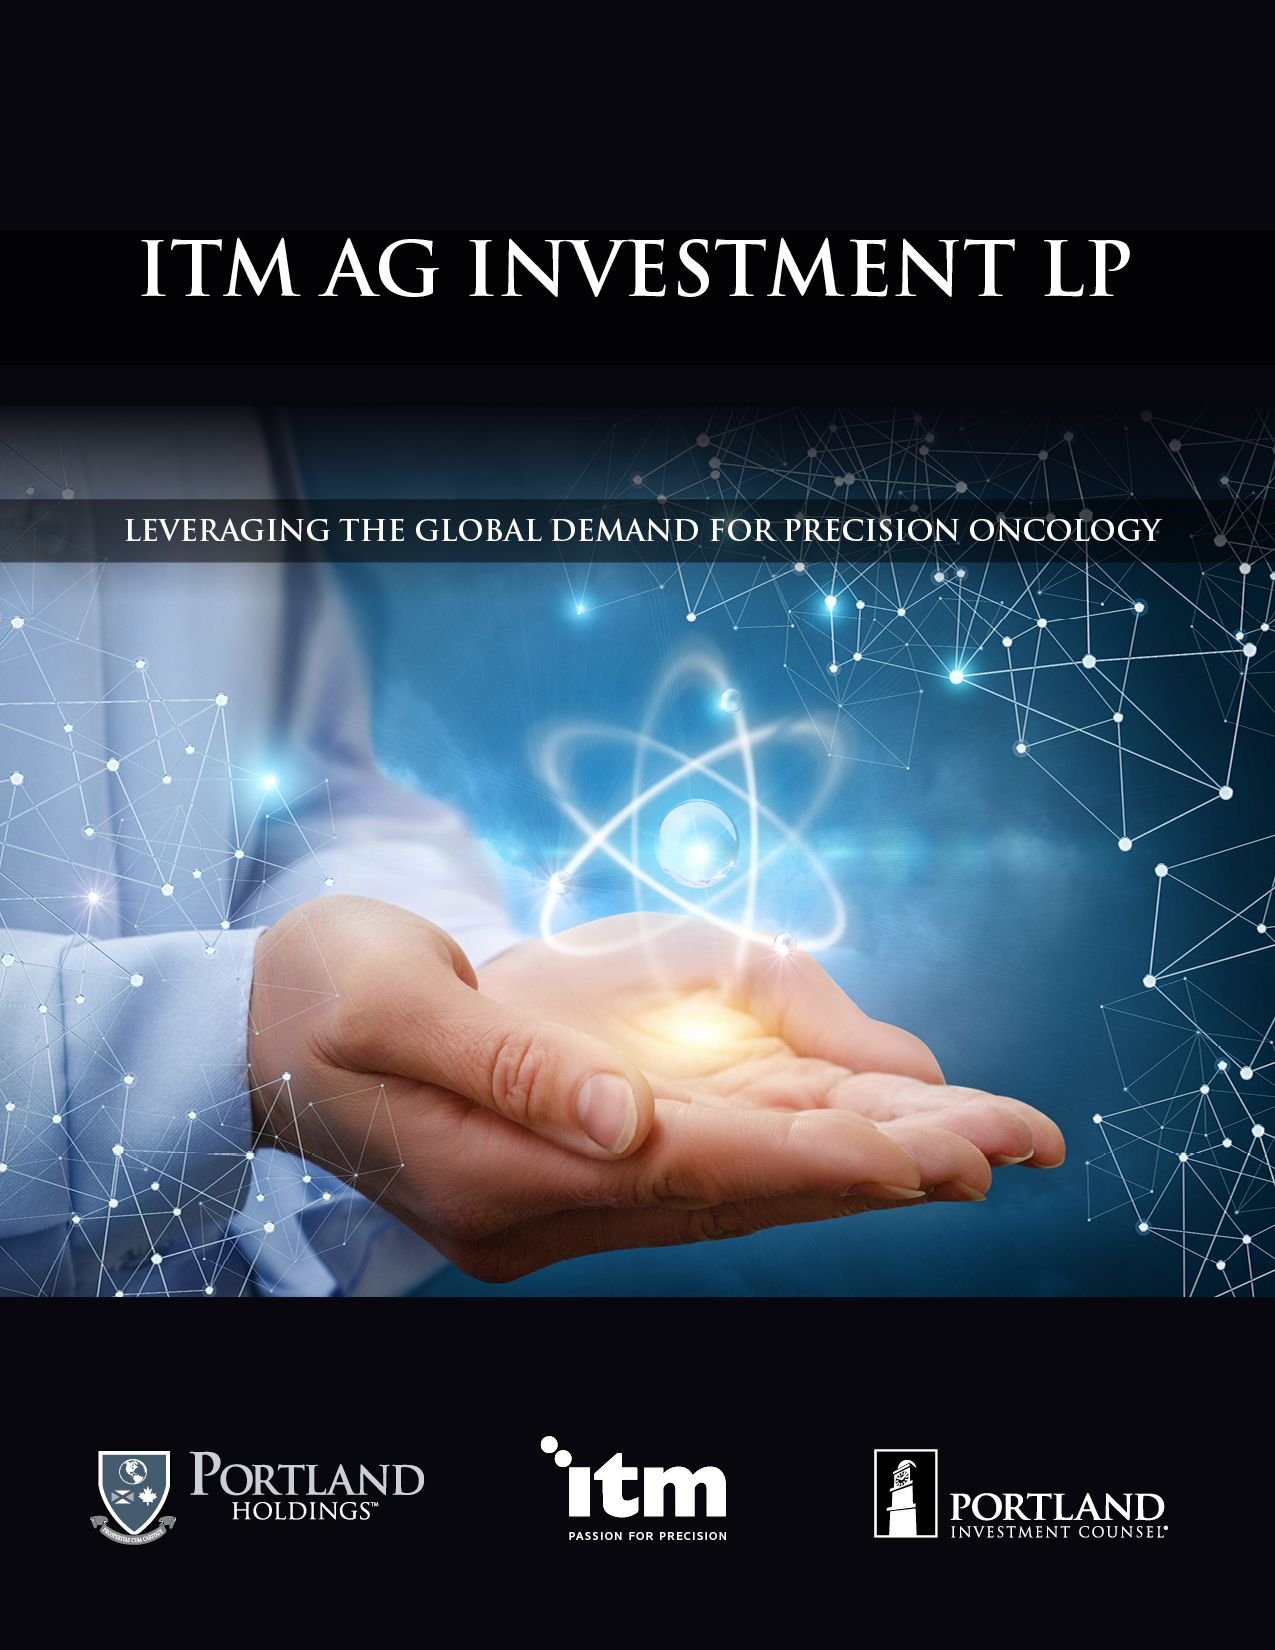 ITM AG Investment LP